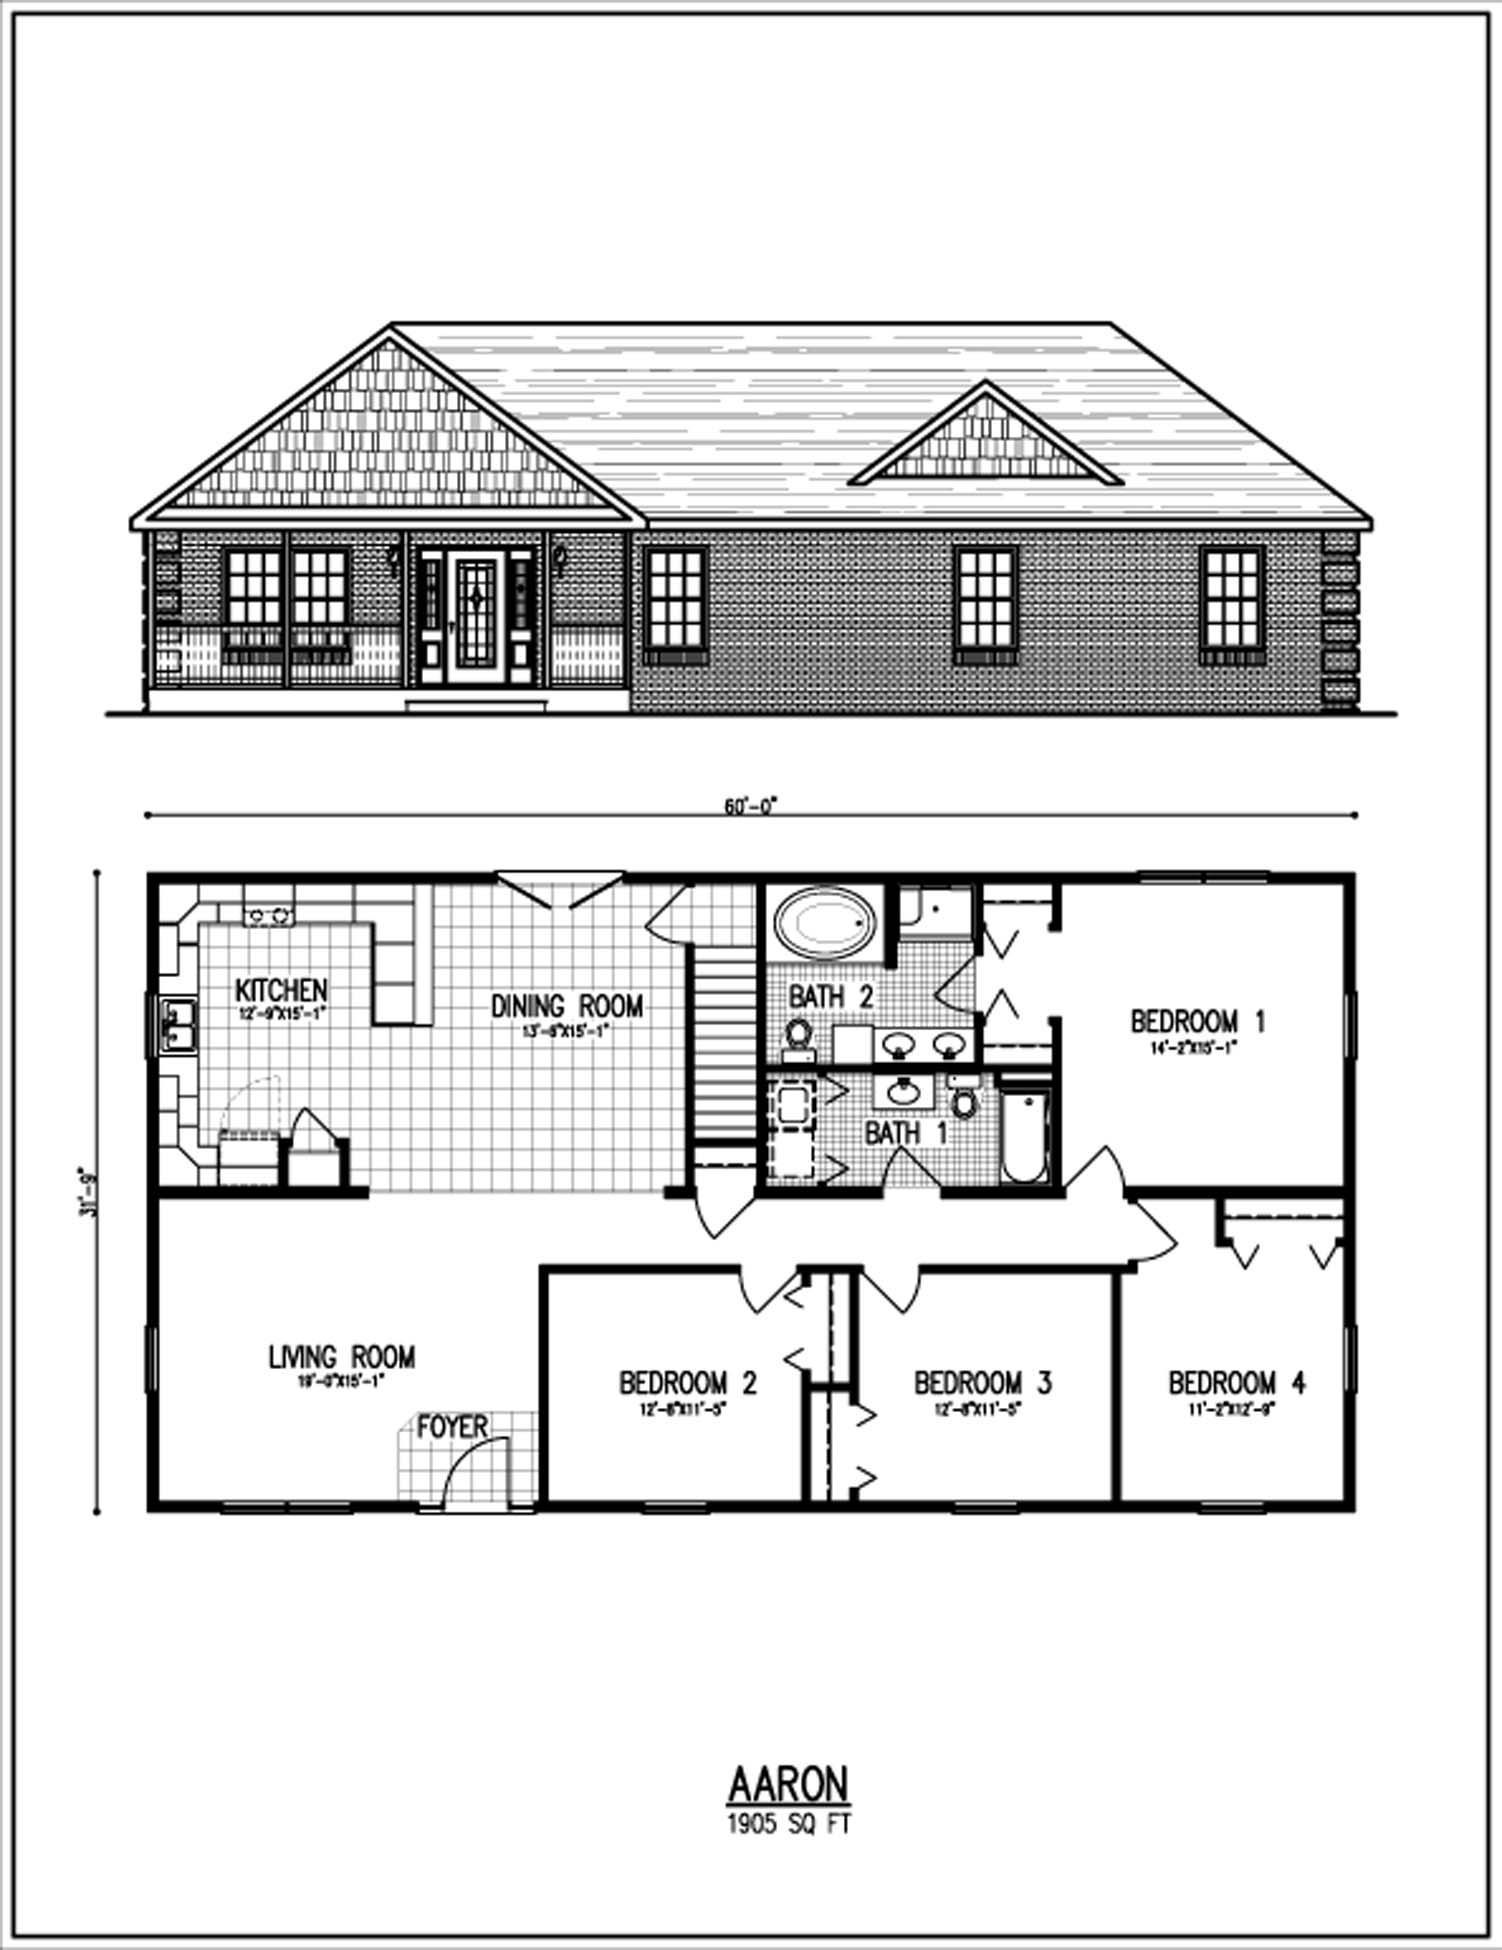 Pin On Home Plans Design Plans